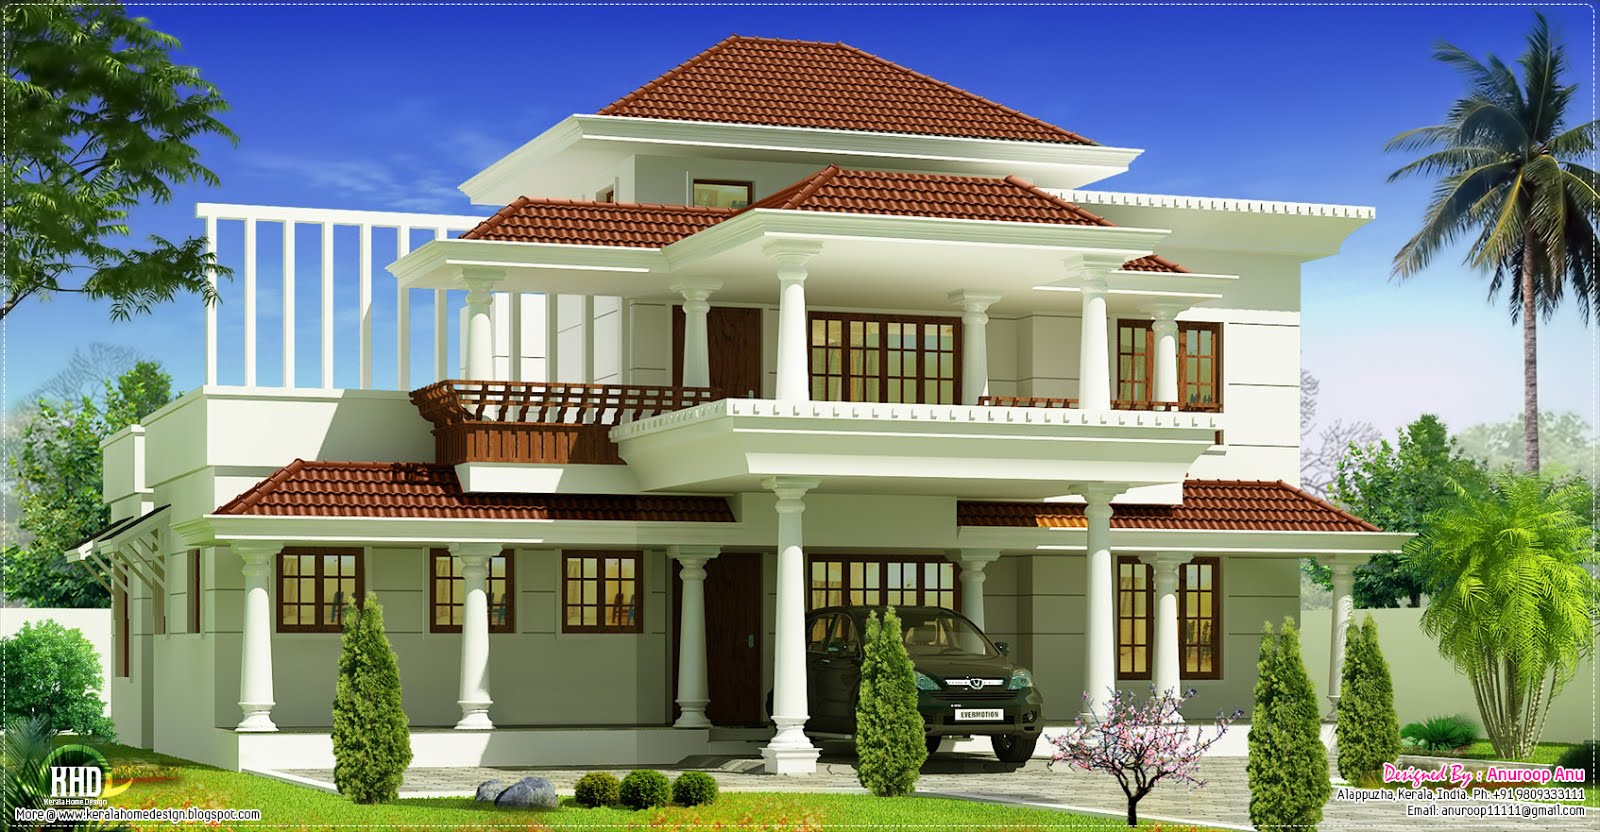 Traditional Mix Kerala Villa Design In 1700 Kerala Home